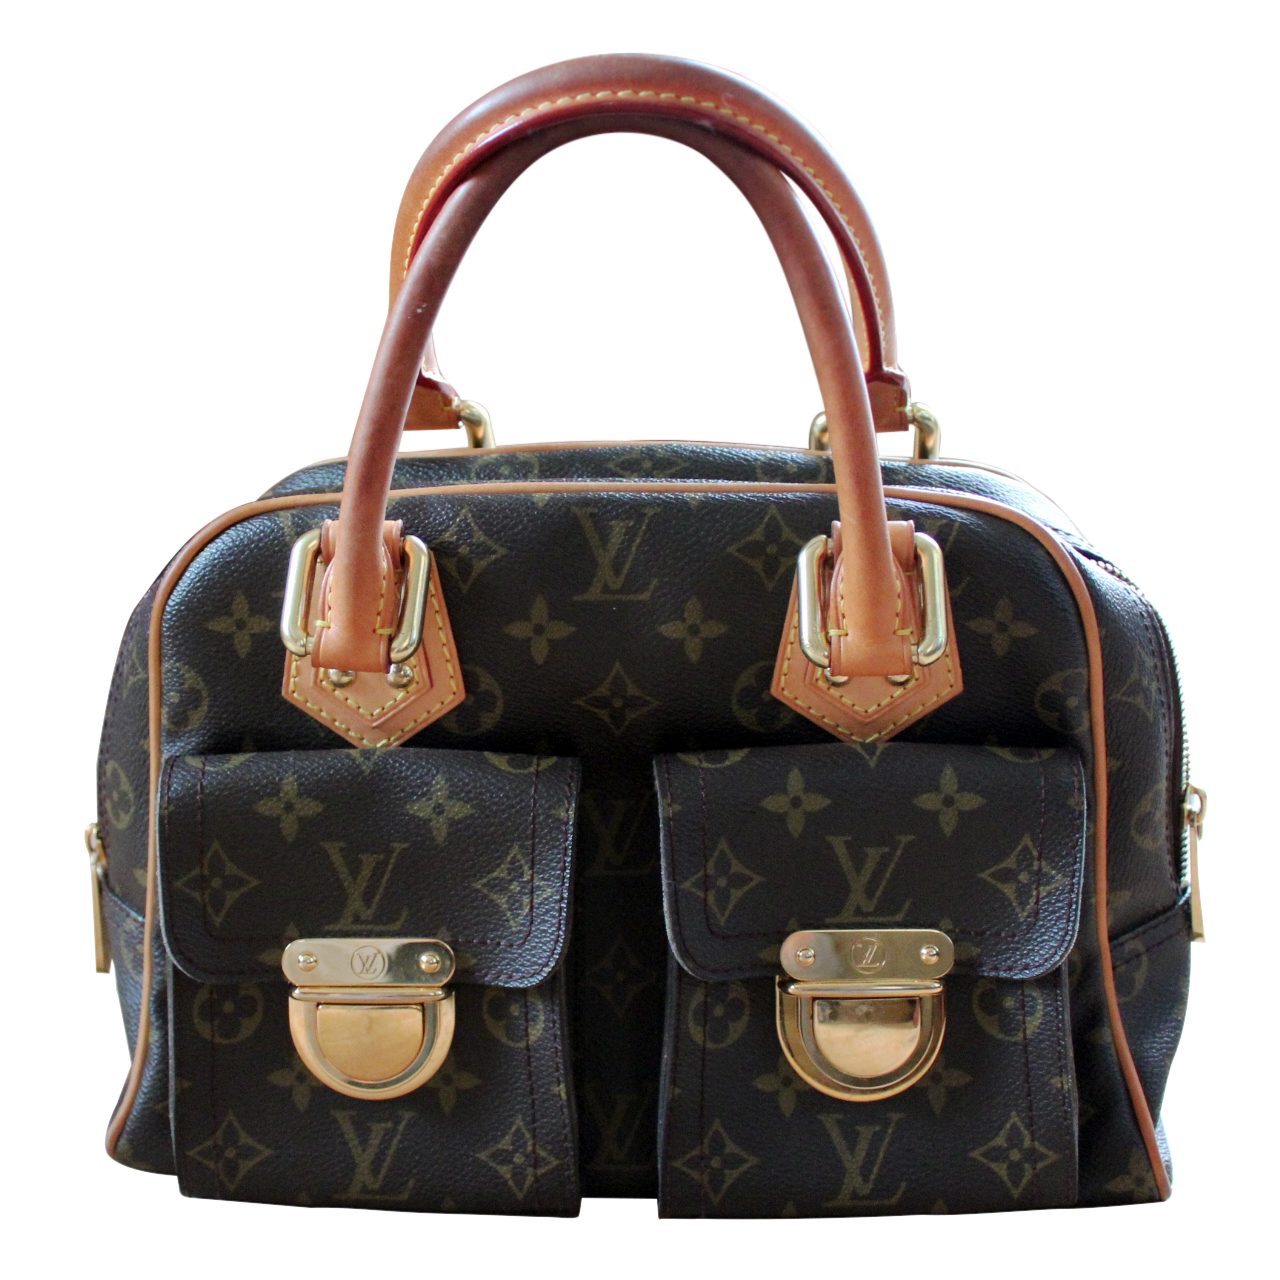 7c7b759bd3 Louis Vuitton Manhattan Pm038367